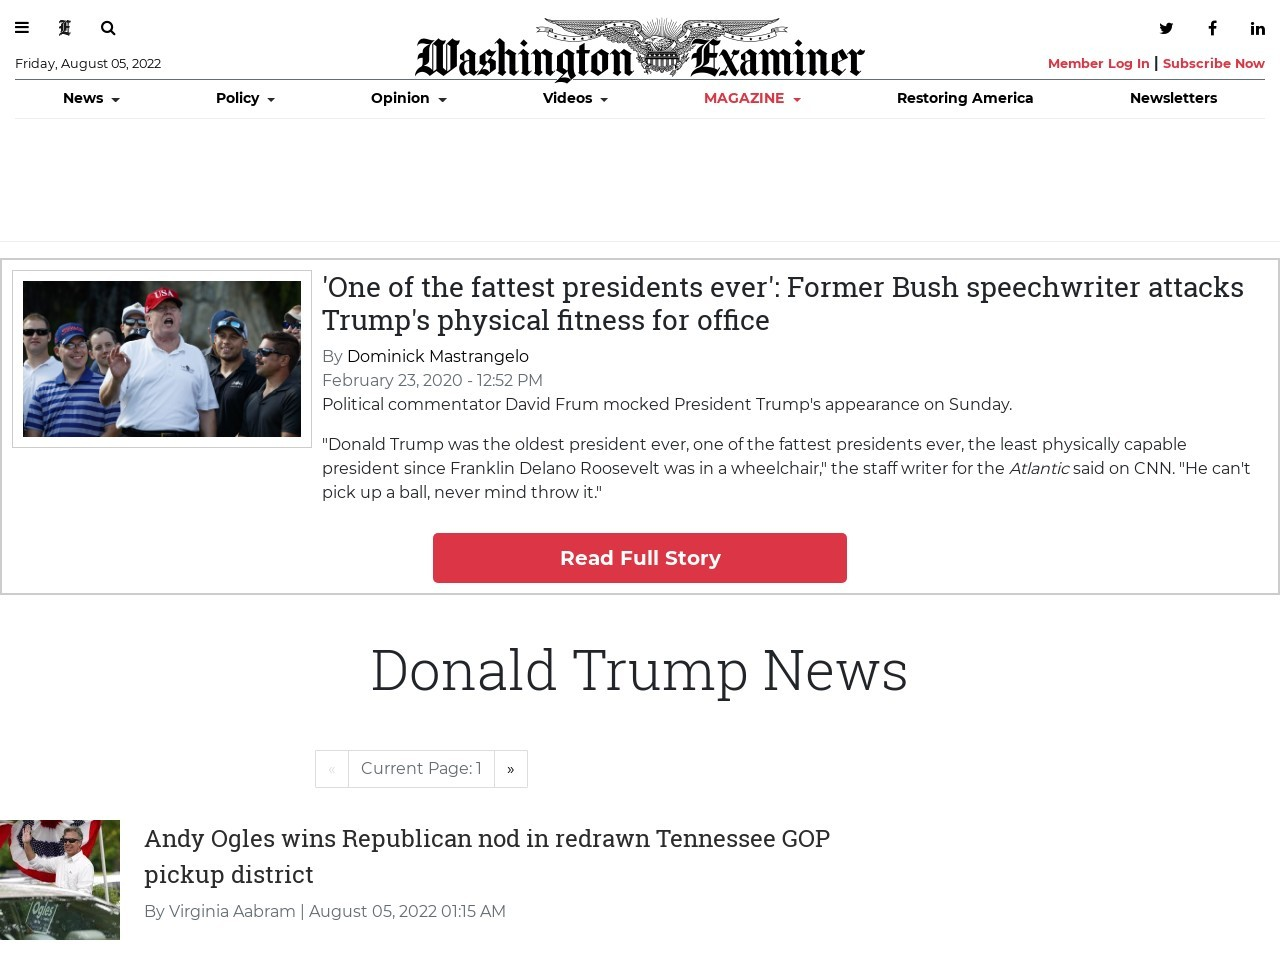 'One of the fattest presidents ever': David Frum attacks Trump's physical fitness for office